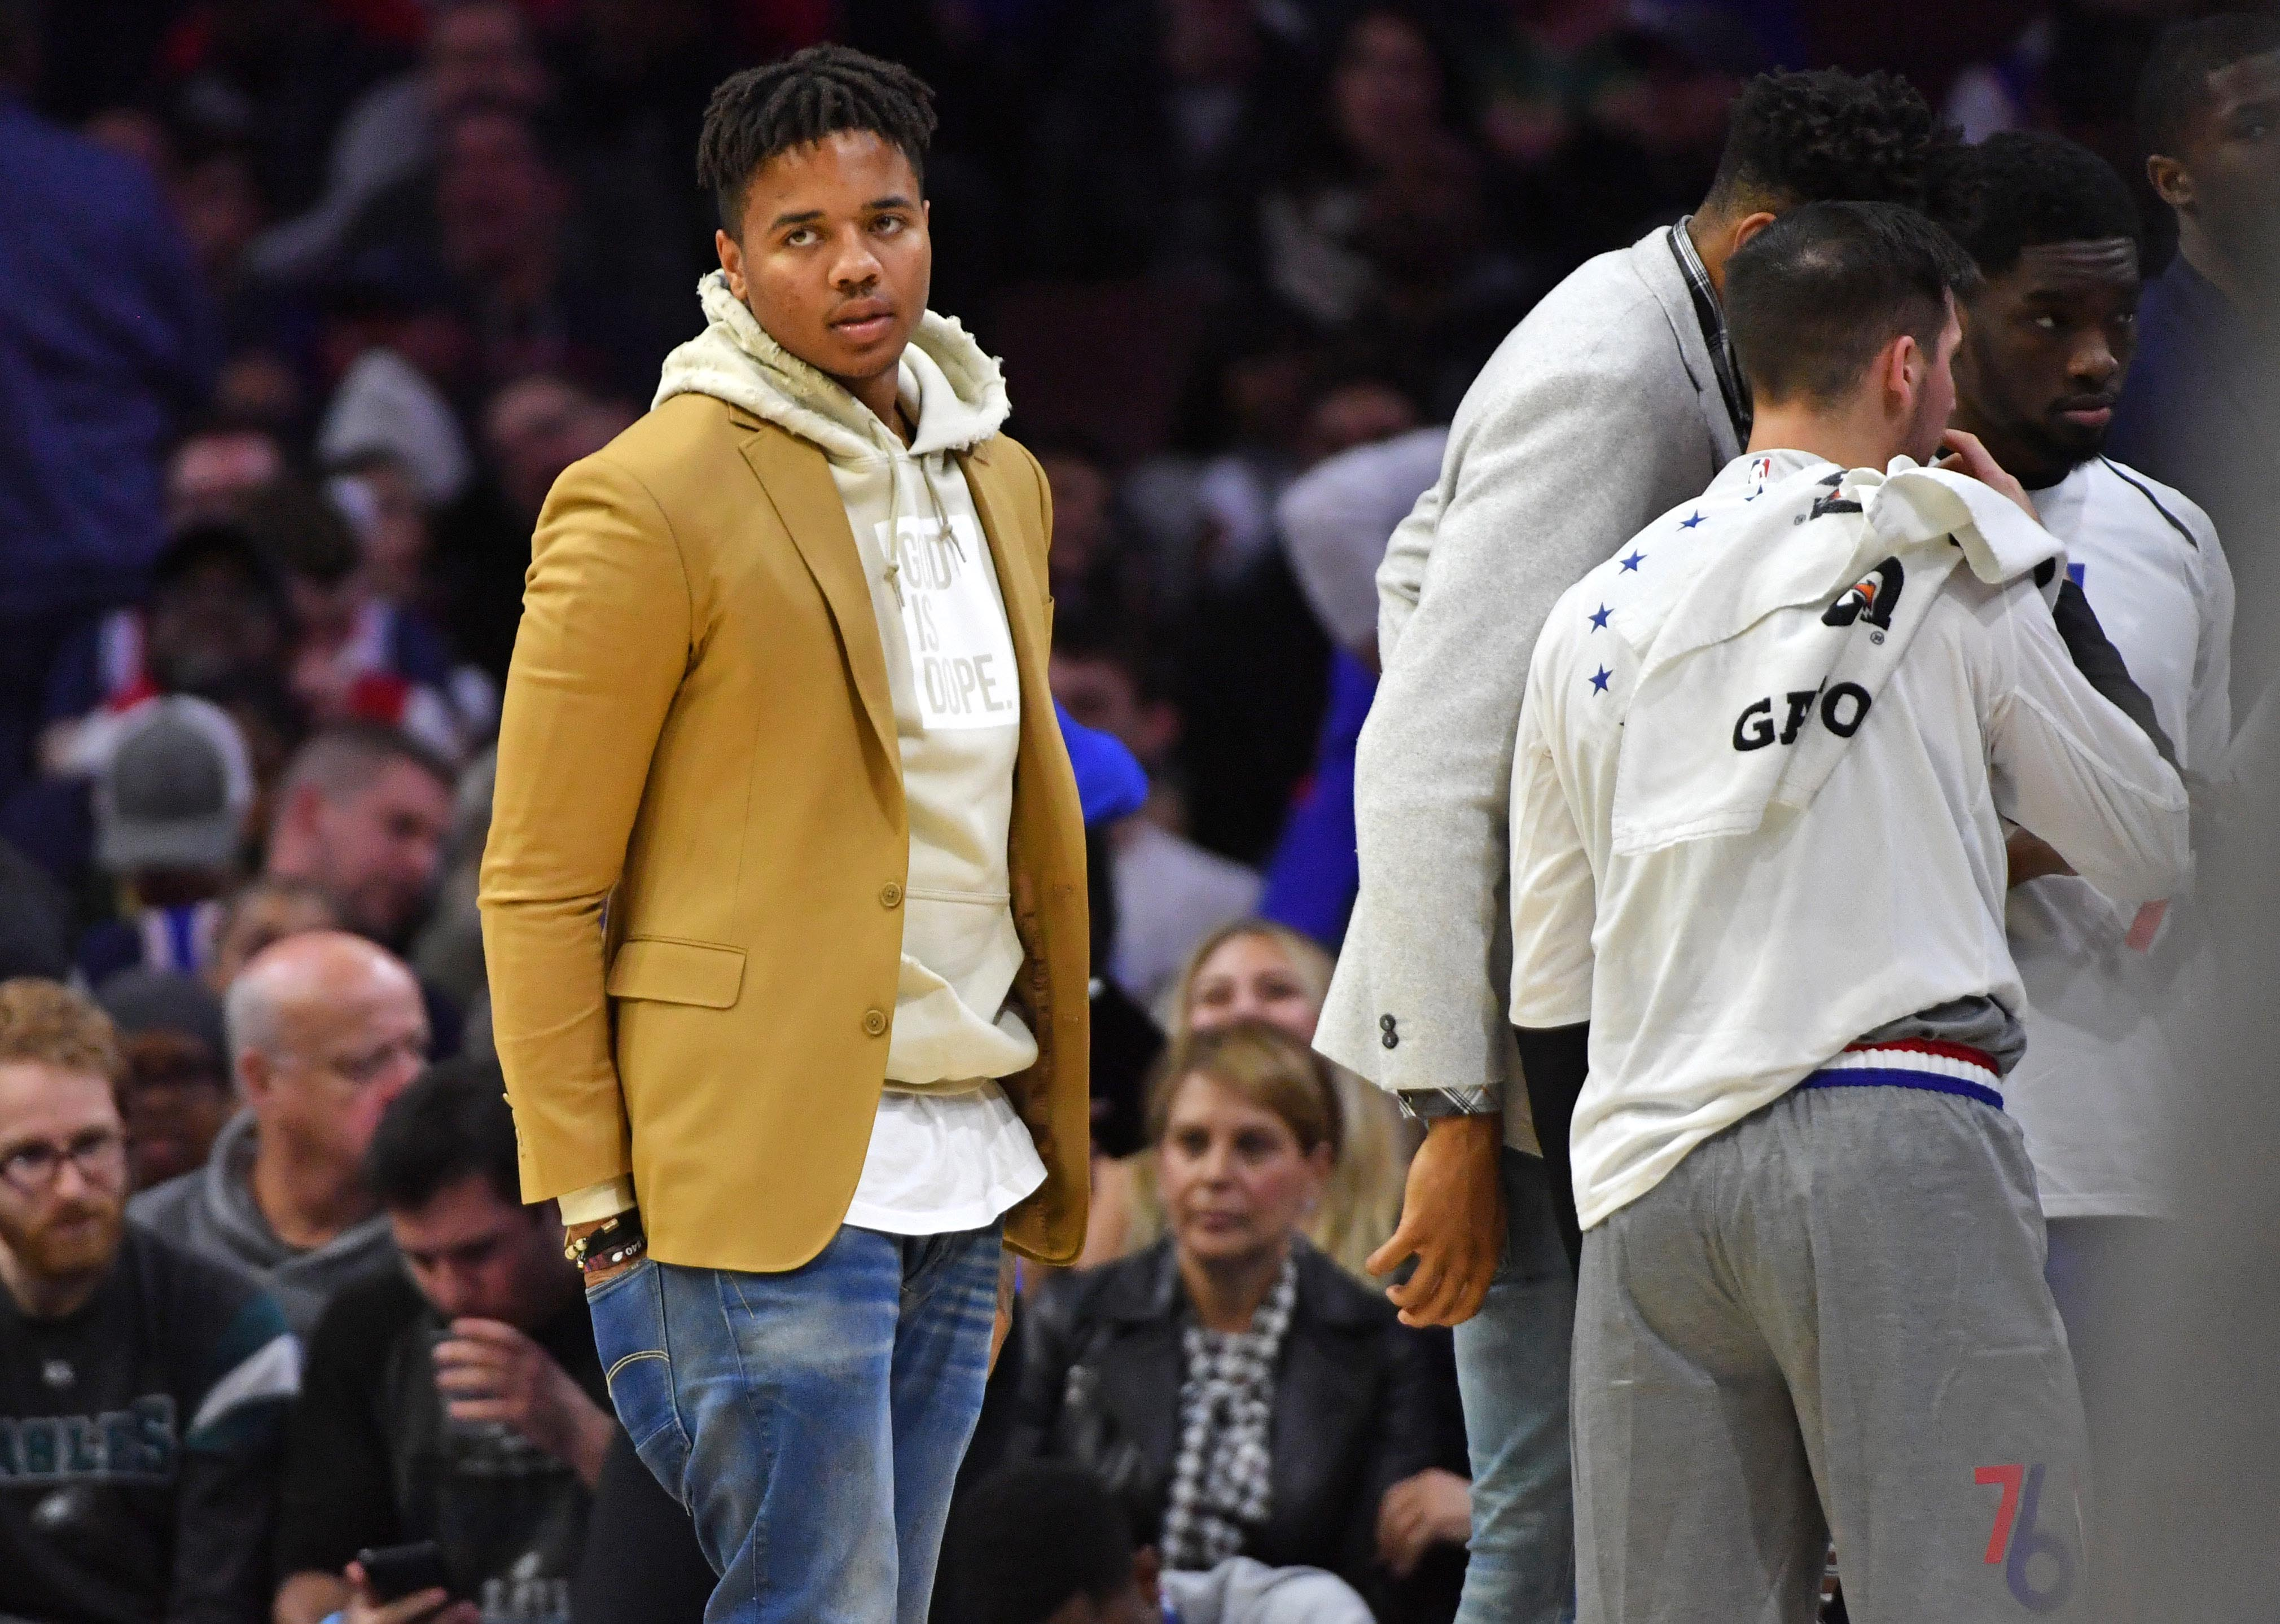 Why did Sixers GM Elton Brand trade Markelle Fultz to the Magic?